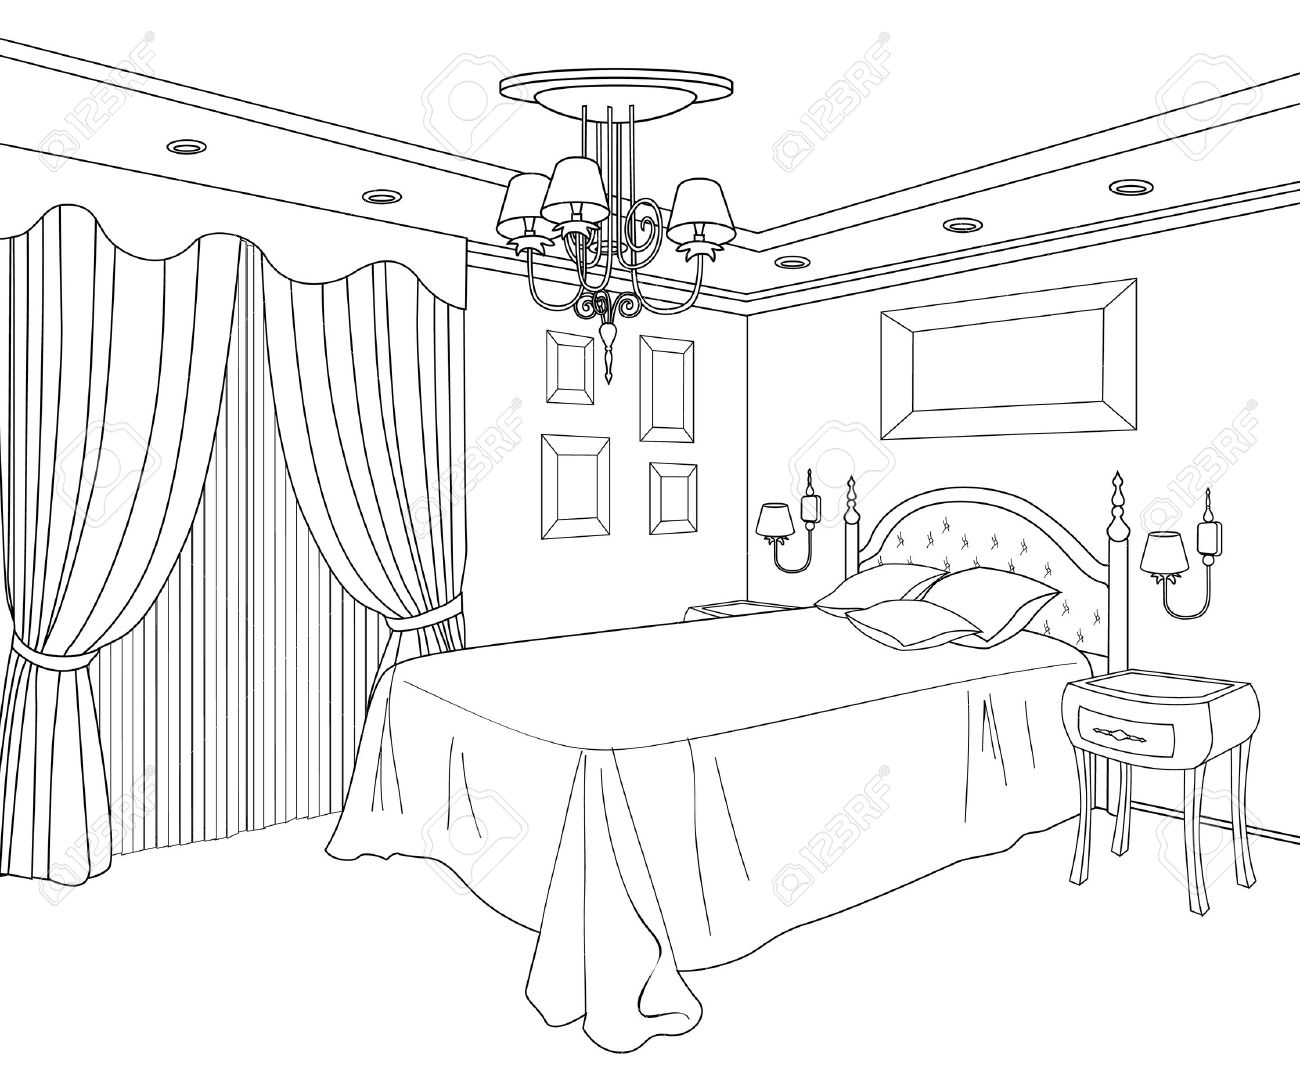 Bedroom Designs Outline designs outline furniture editable vector illustration of an